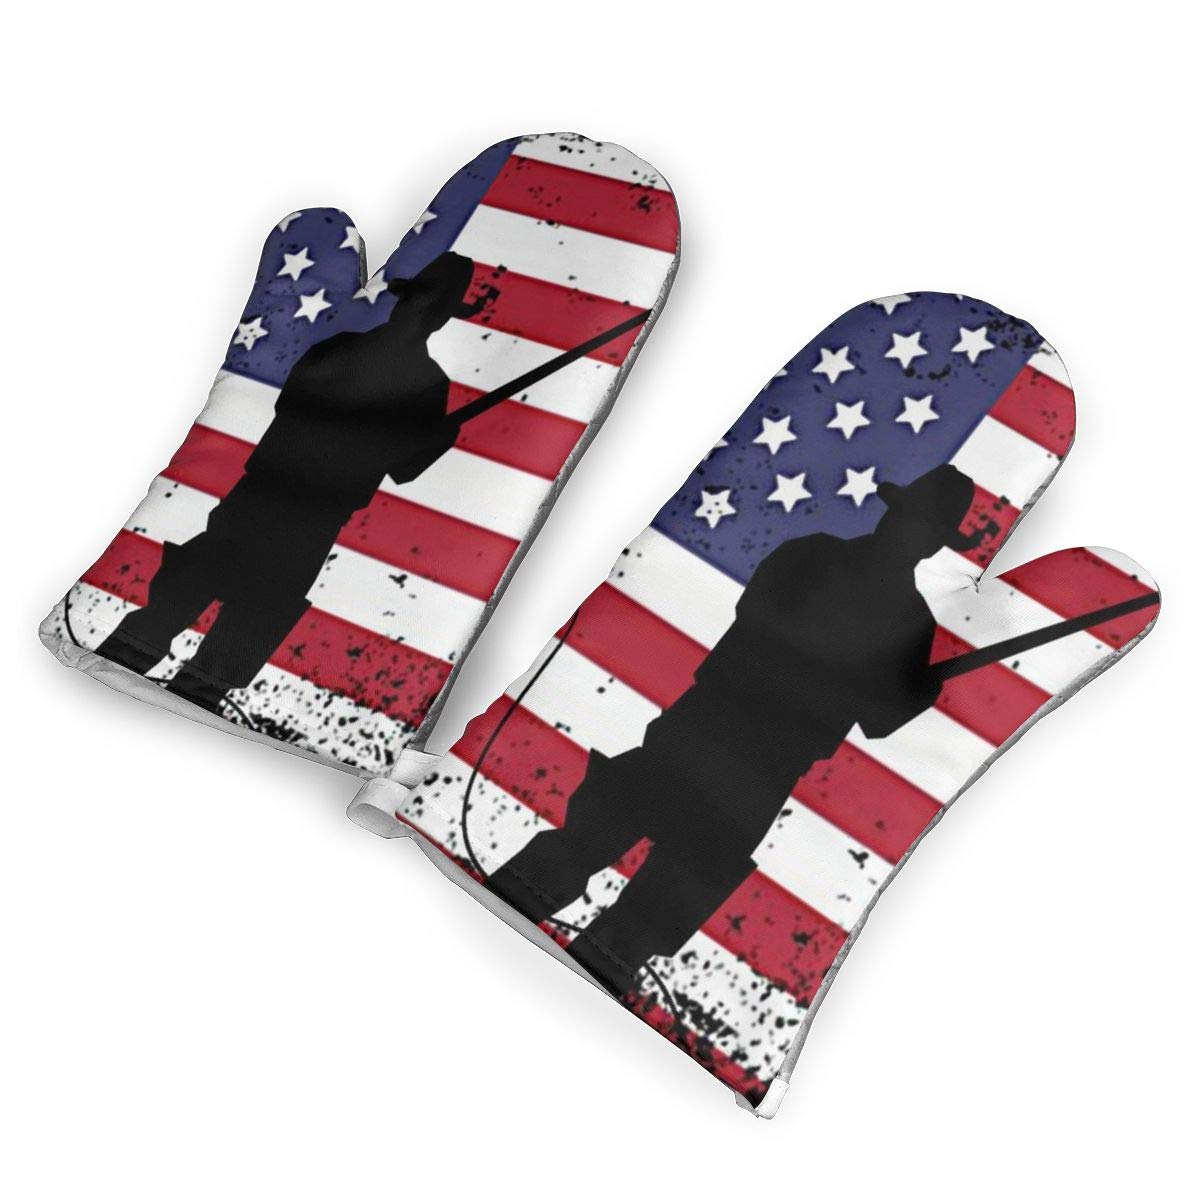 not American Flag Fishing Oven Mitts with Polyester Fabric Printed Pattern,1 Pair of Heat Resistant Oven Gloves for Cooking,Baking,Grilling,Barbecue Potholders